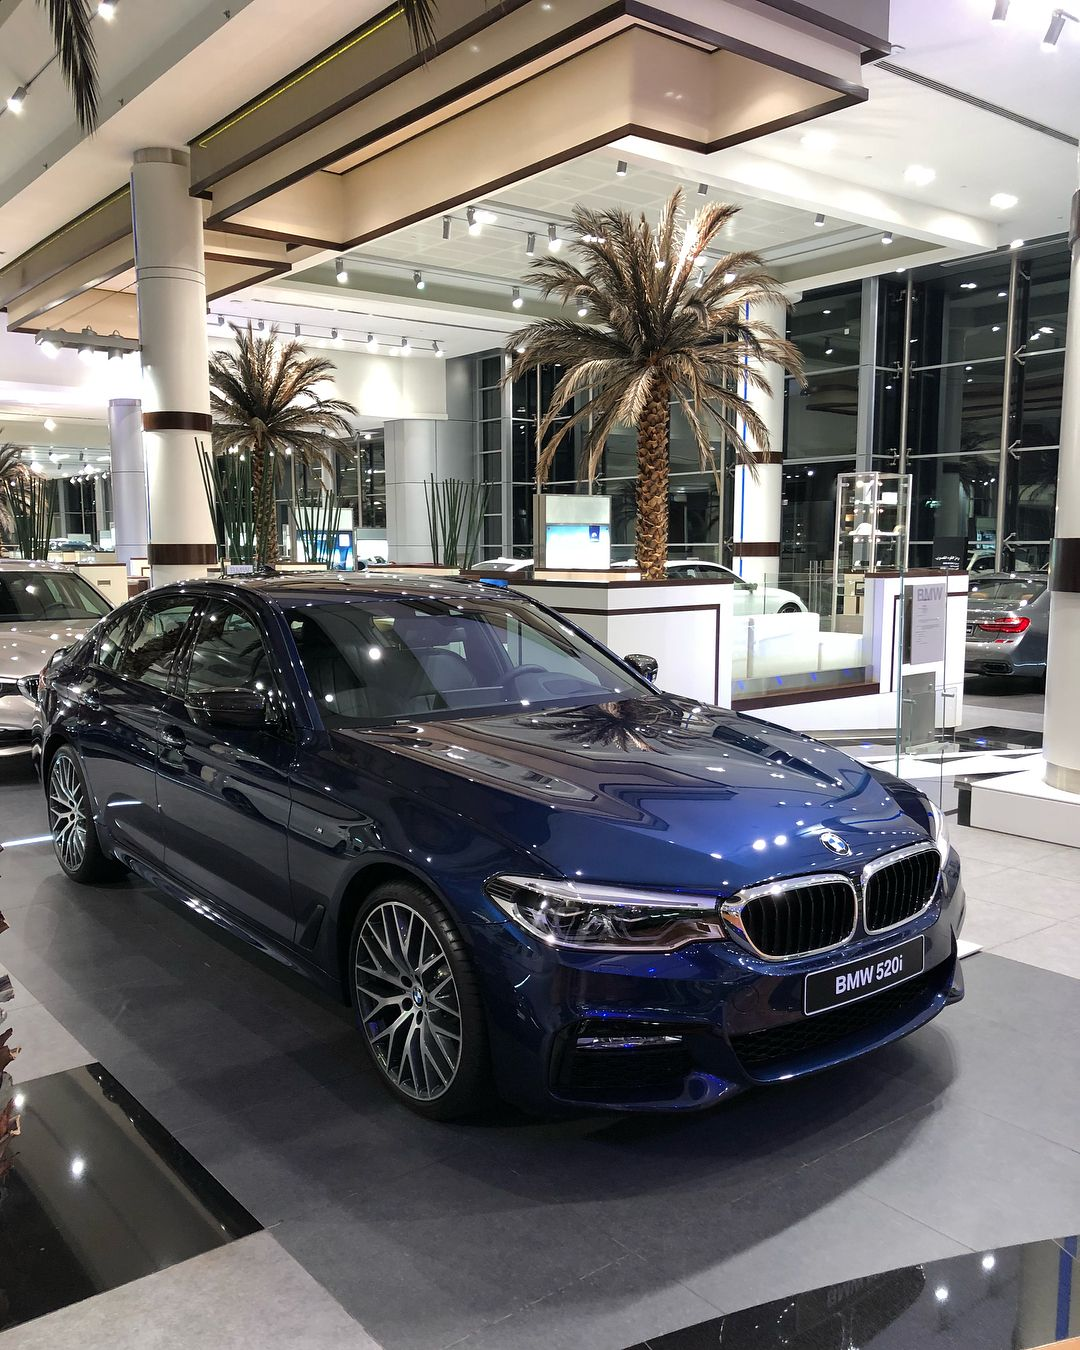 Pin On Bmw And Other Whips